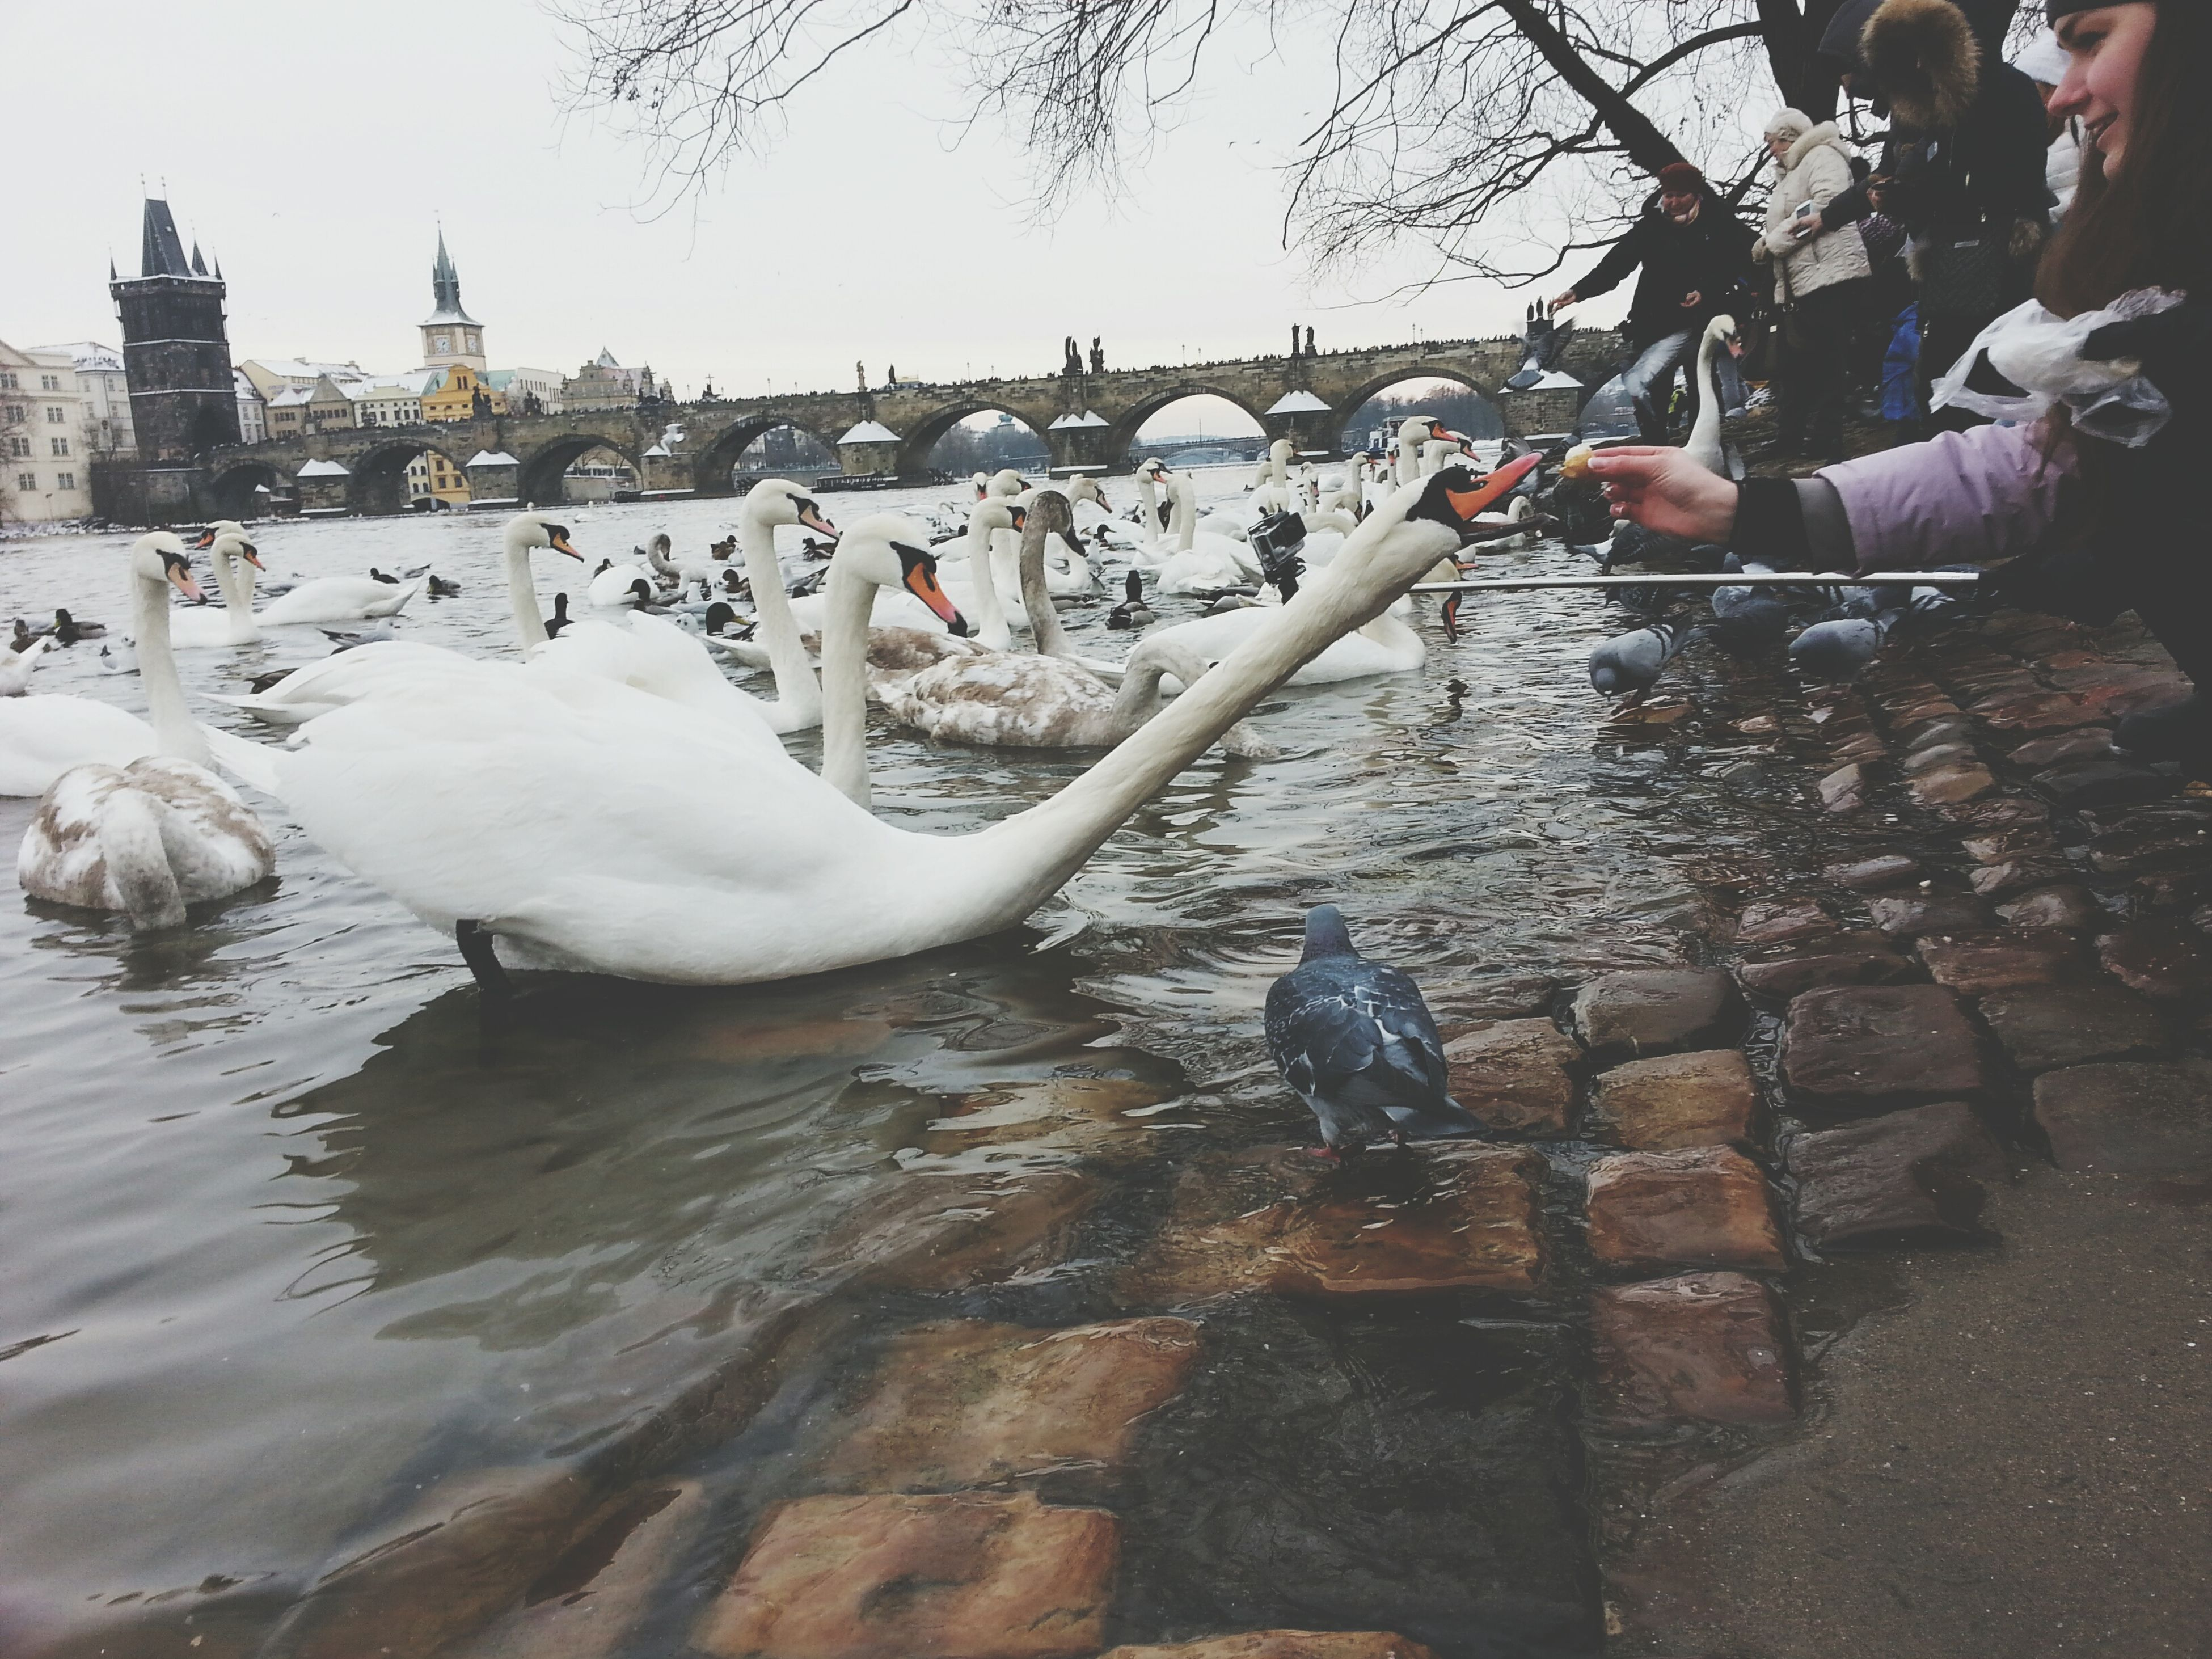 bird, water, animal themes, animals in the wild, architecture, built structure, river, wildlife, building exterior, lake, seagull, day, one animal, swan, lifestyles, outdoors, nature, leisure activity